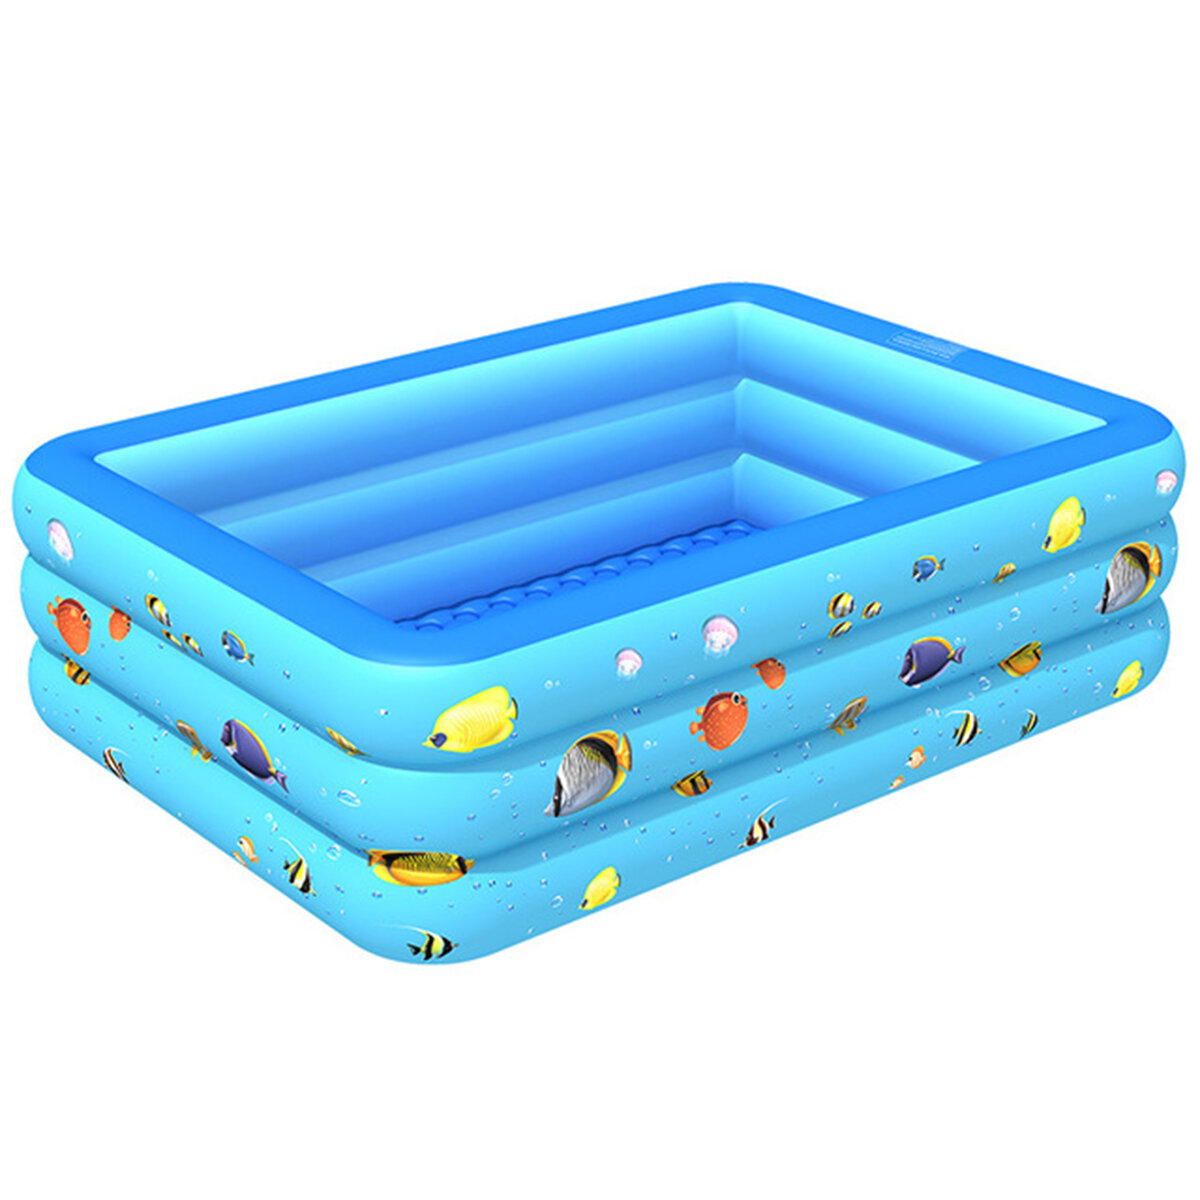 Inflatable swimming pool yard garden family kids play ...